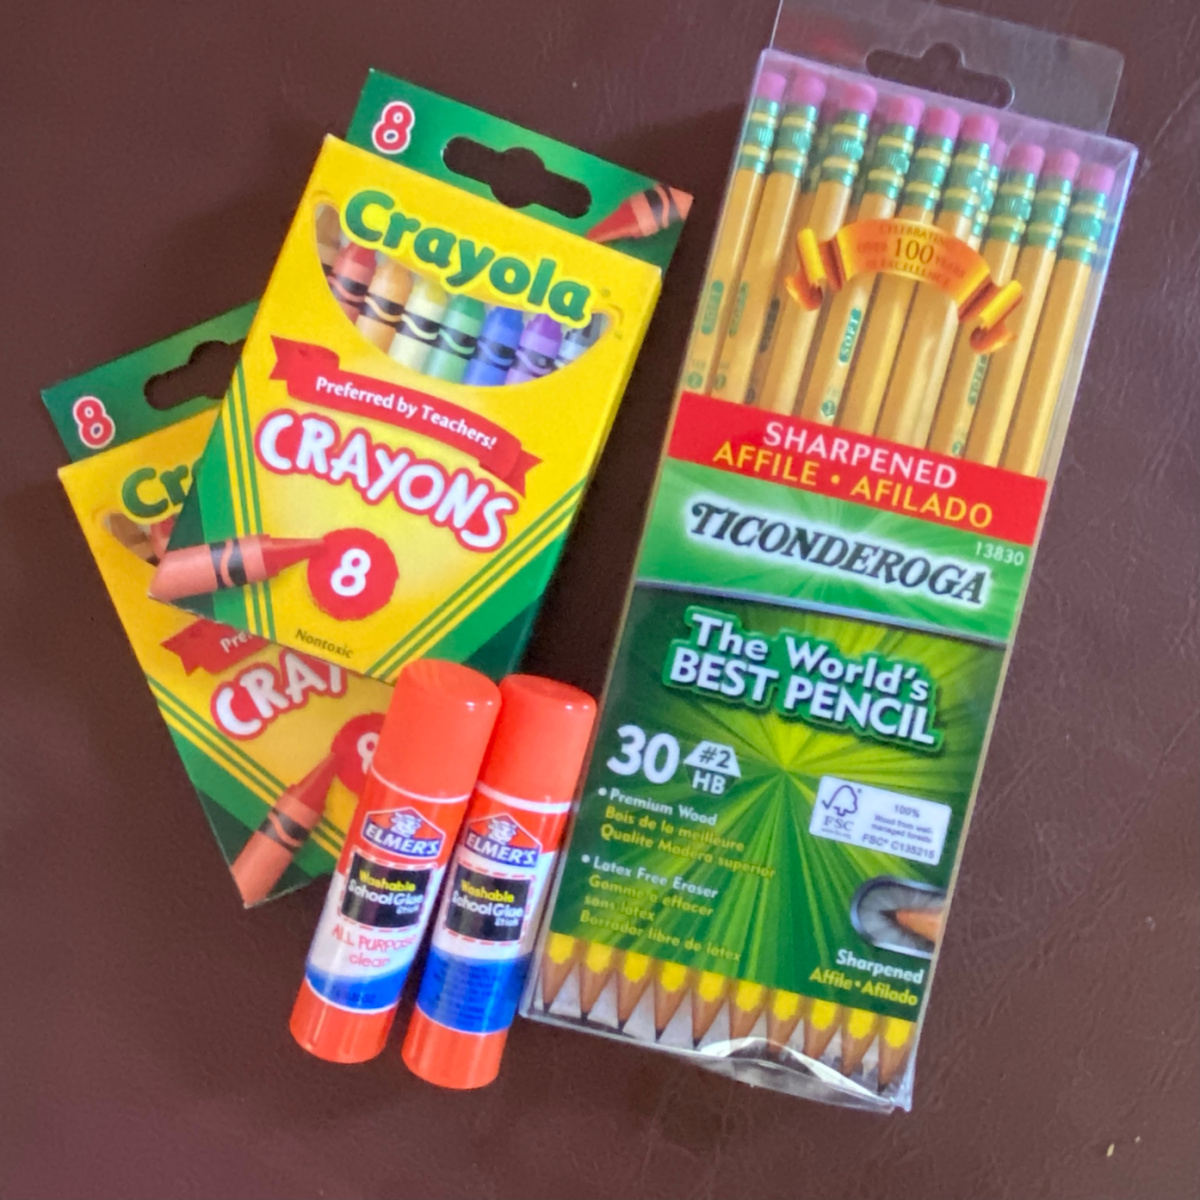 two boxes of crayons, two glue sticks and a pack of pencils